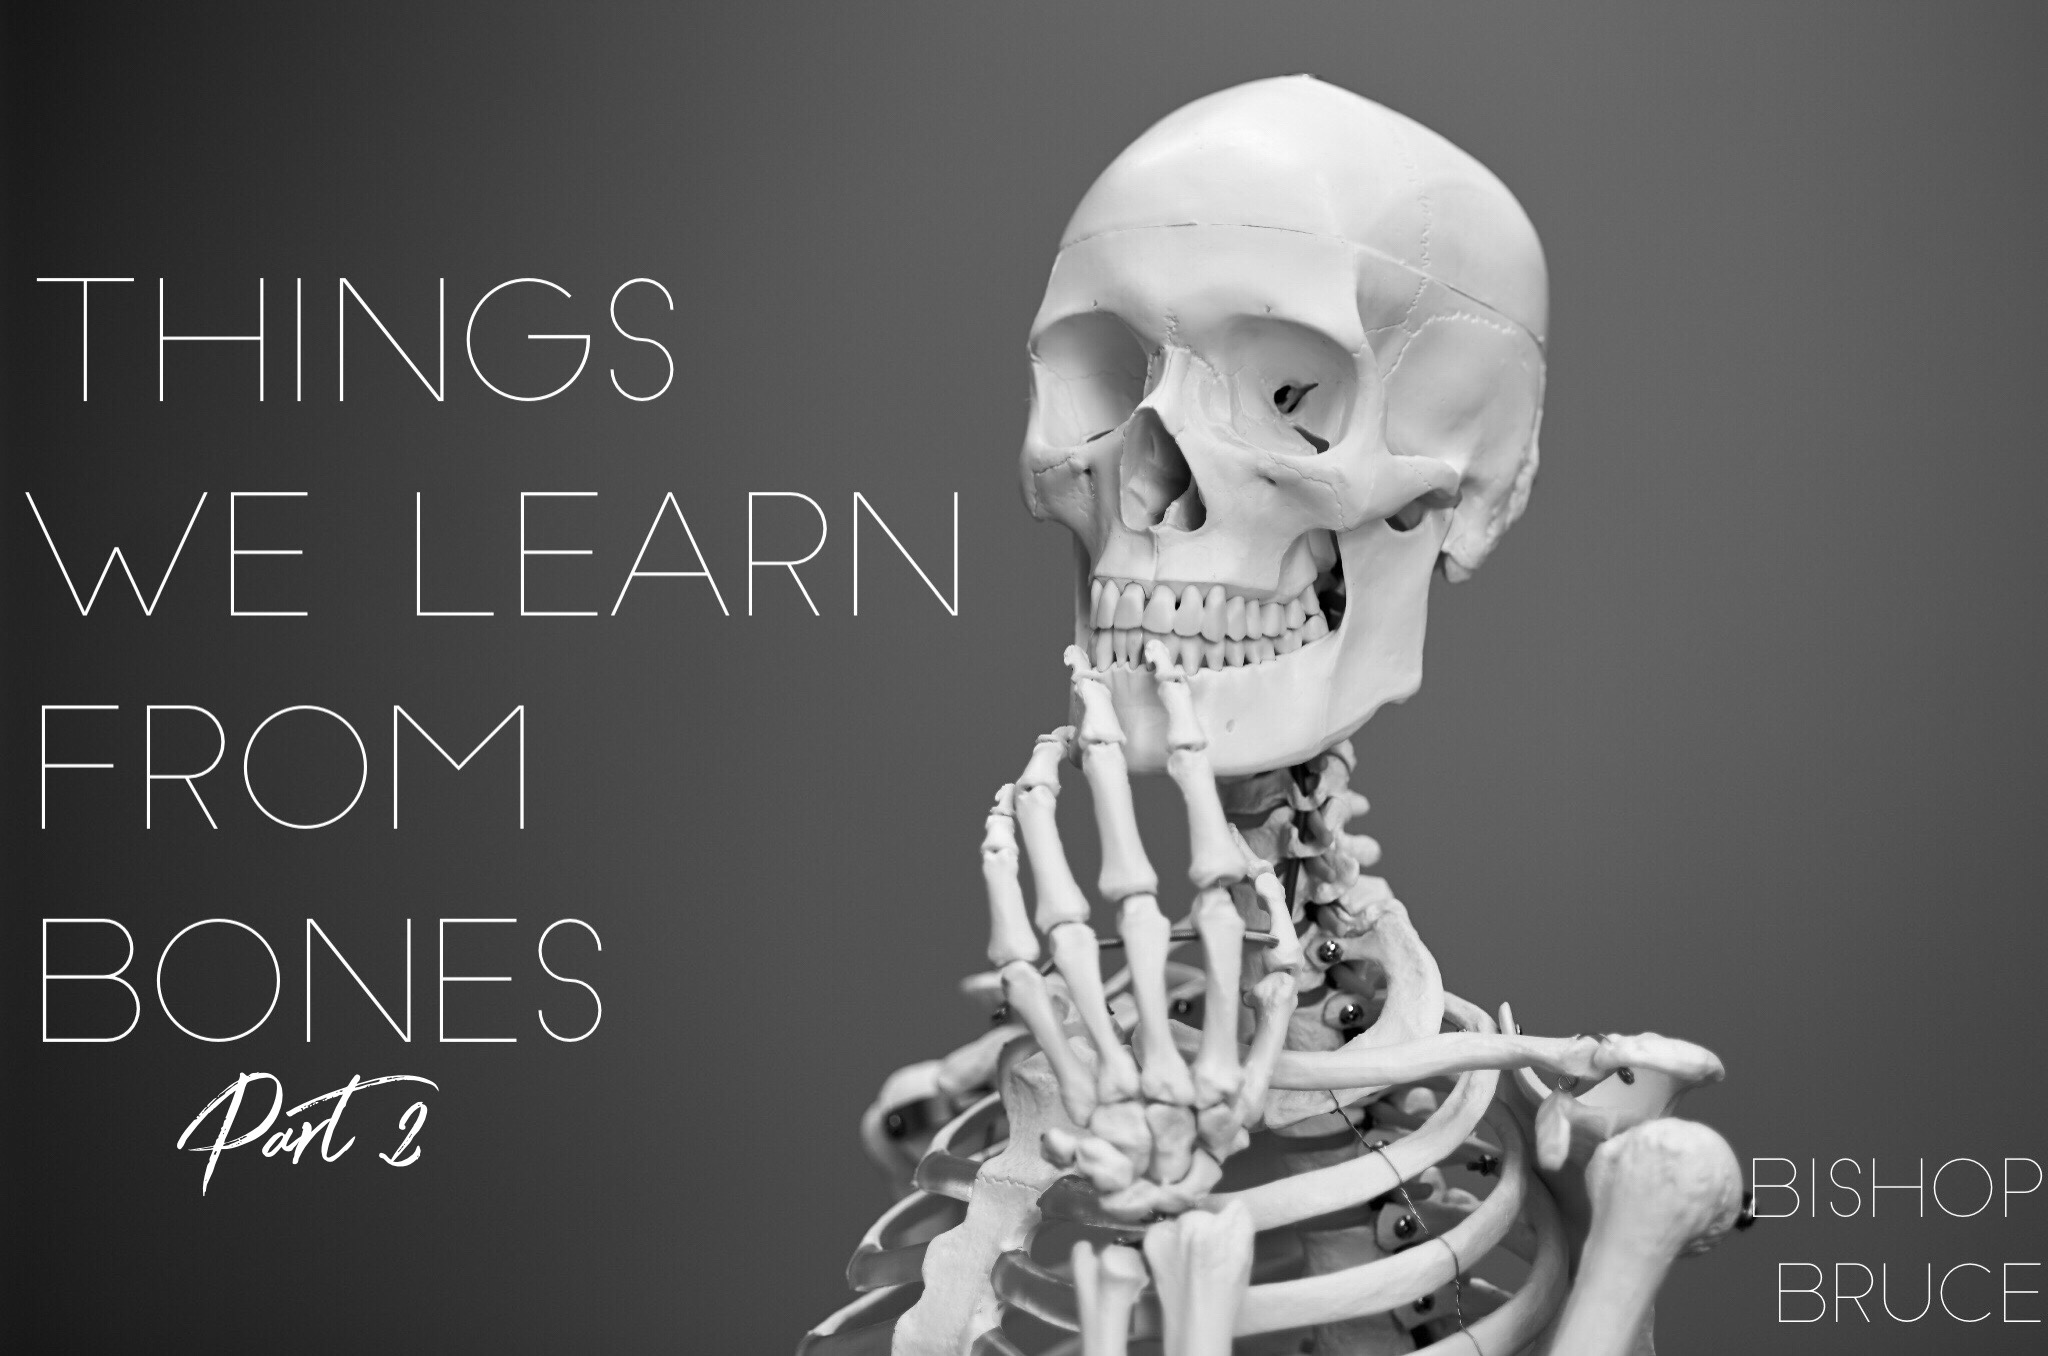 Things We Learn from Bones Pt. 2